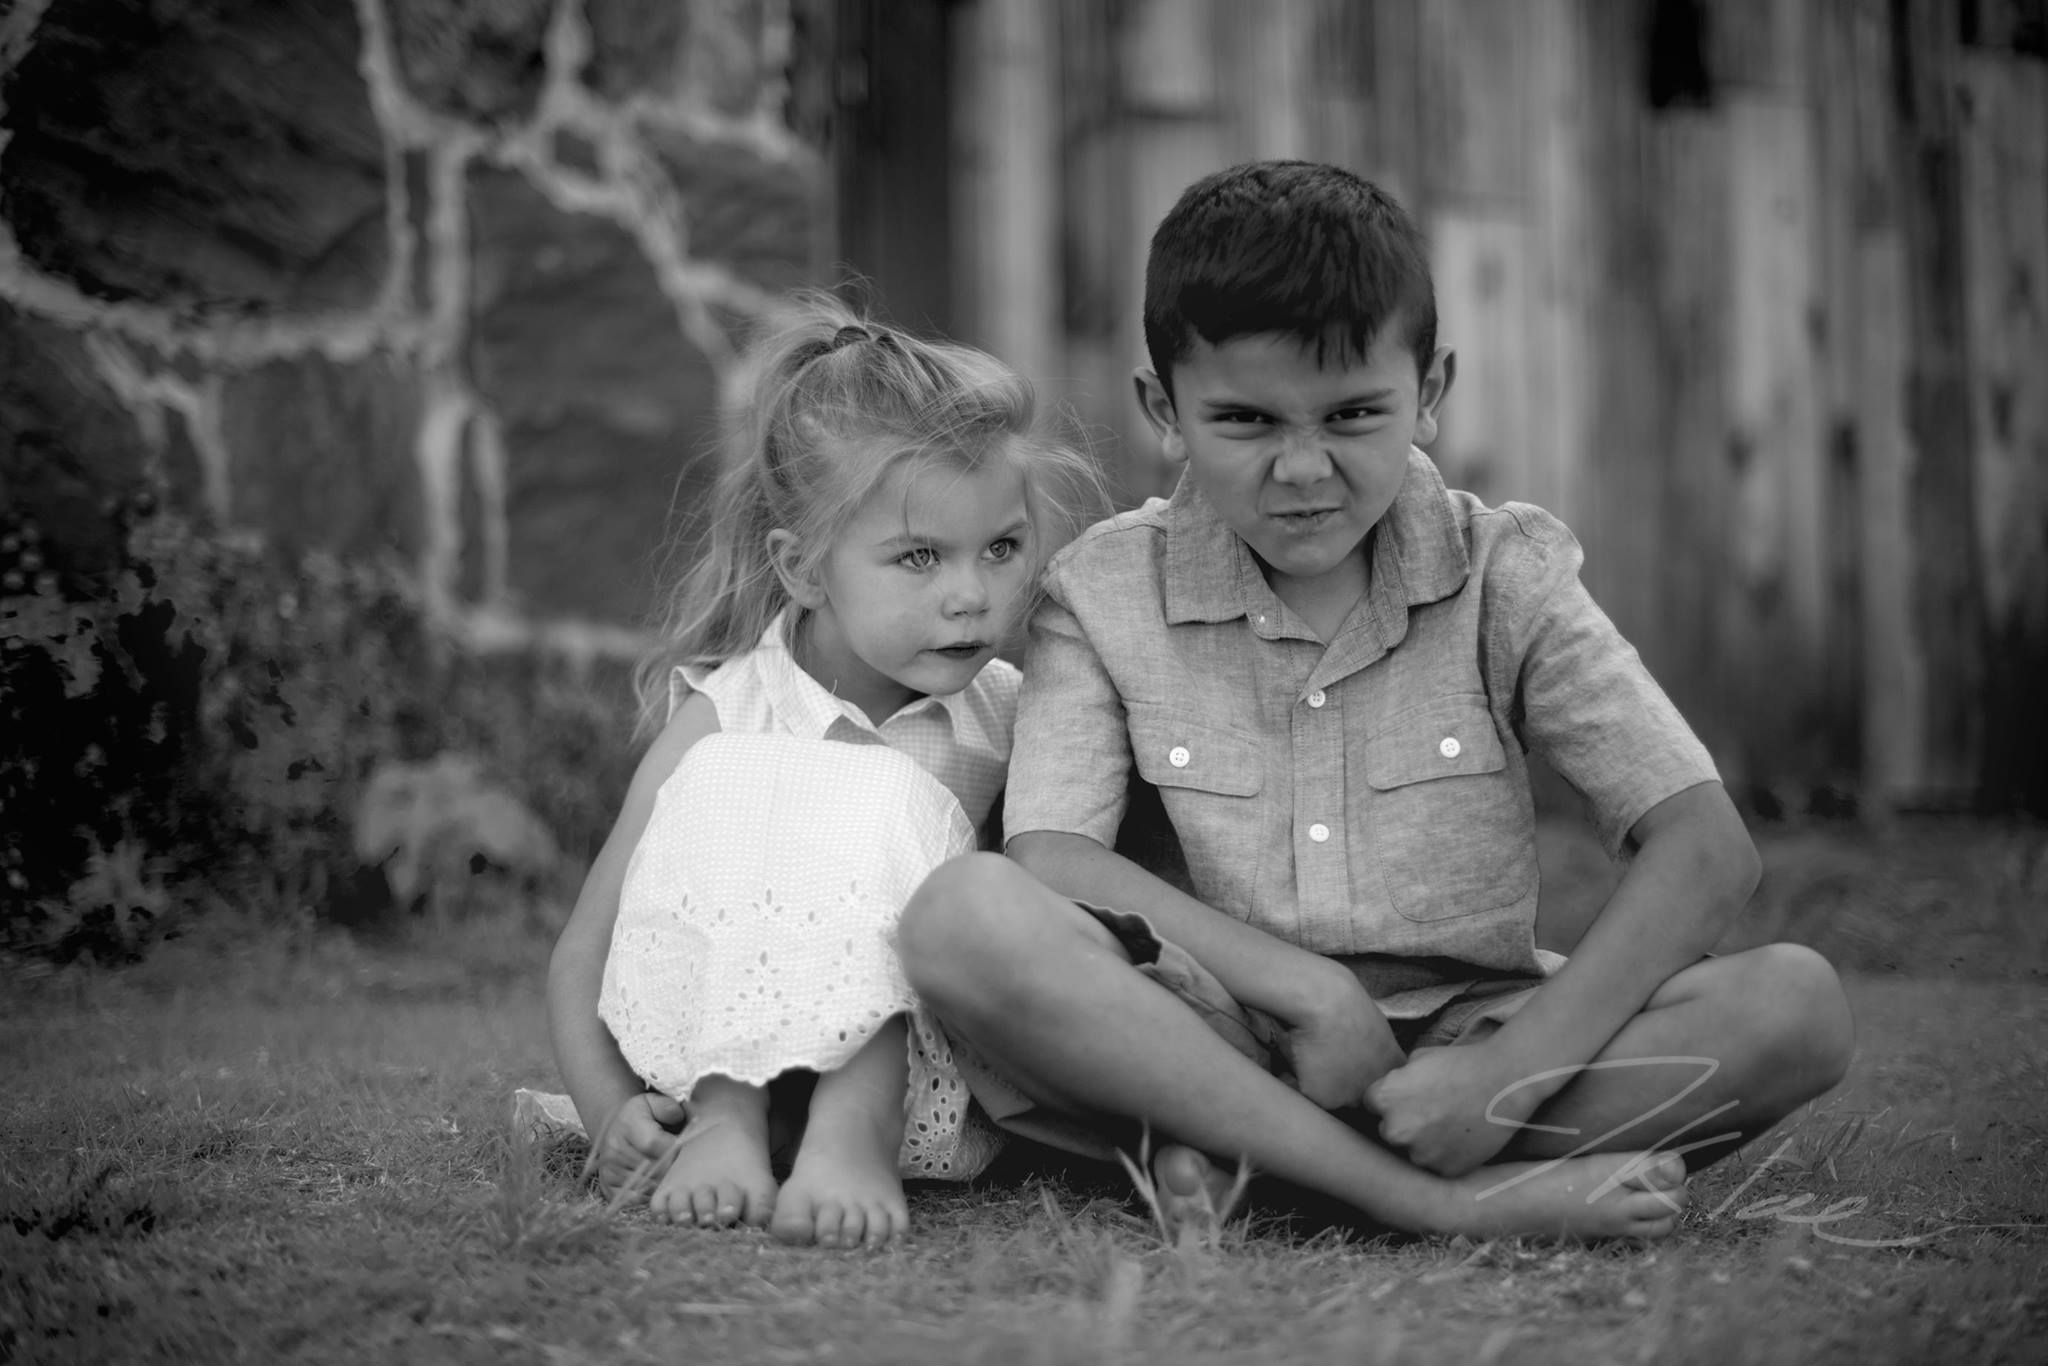 Frisco Texas Kids Photoshoot in Black and White with Brother and Sister